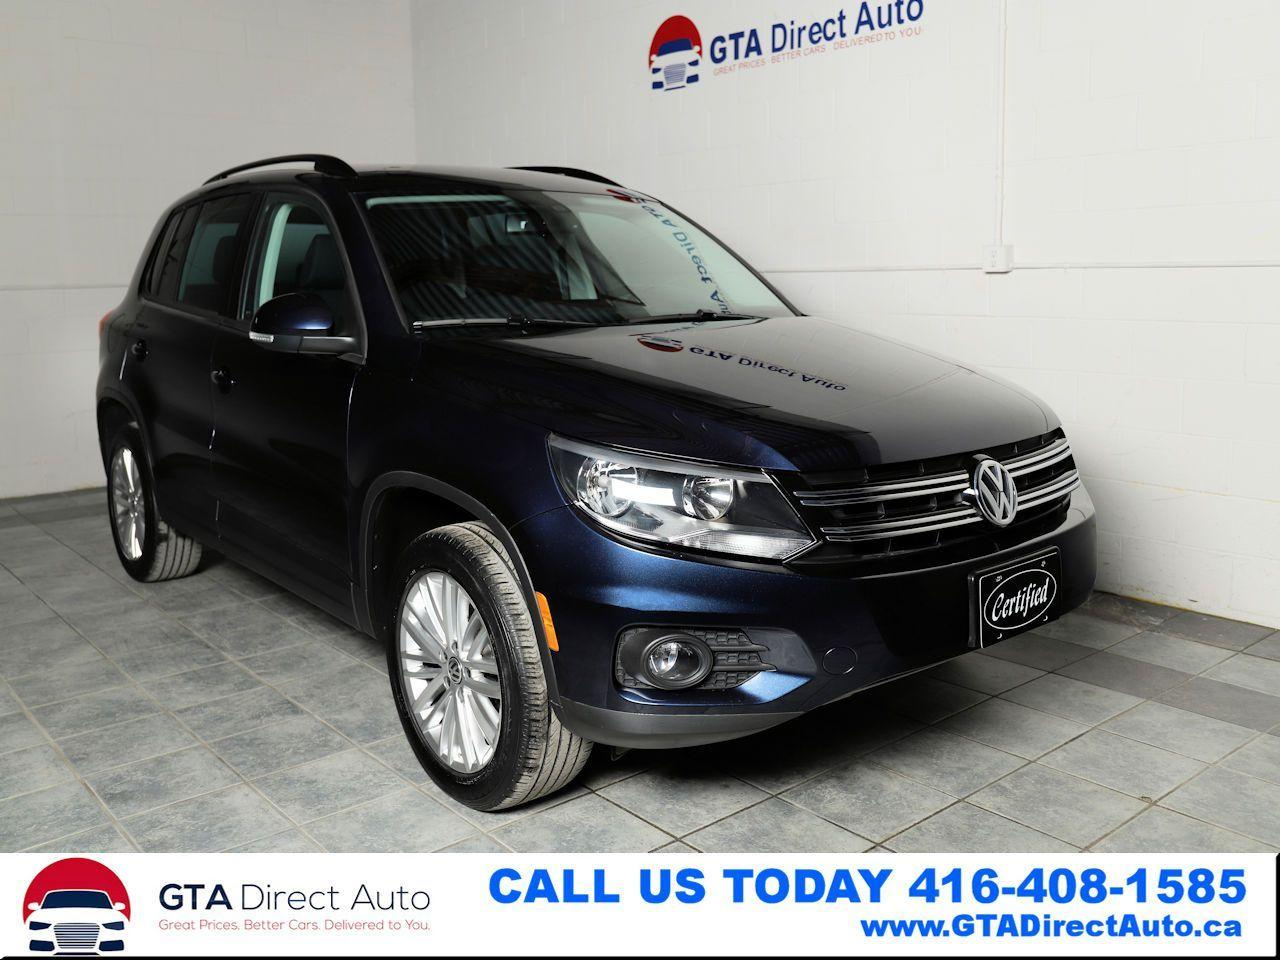 2016 Volkswagen Tiguan Special Edition 4Motion AWD Camera Heatd Certified